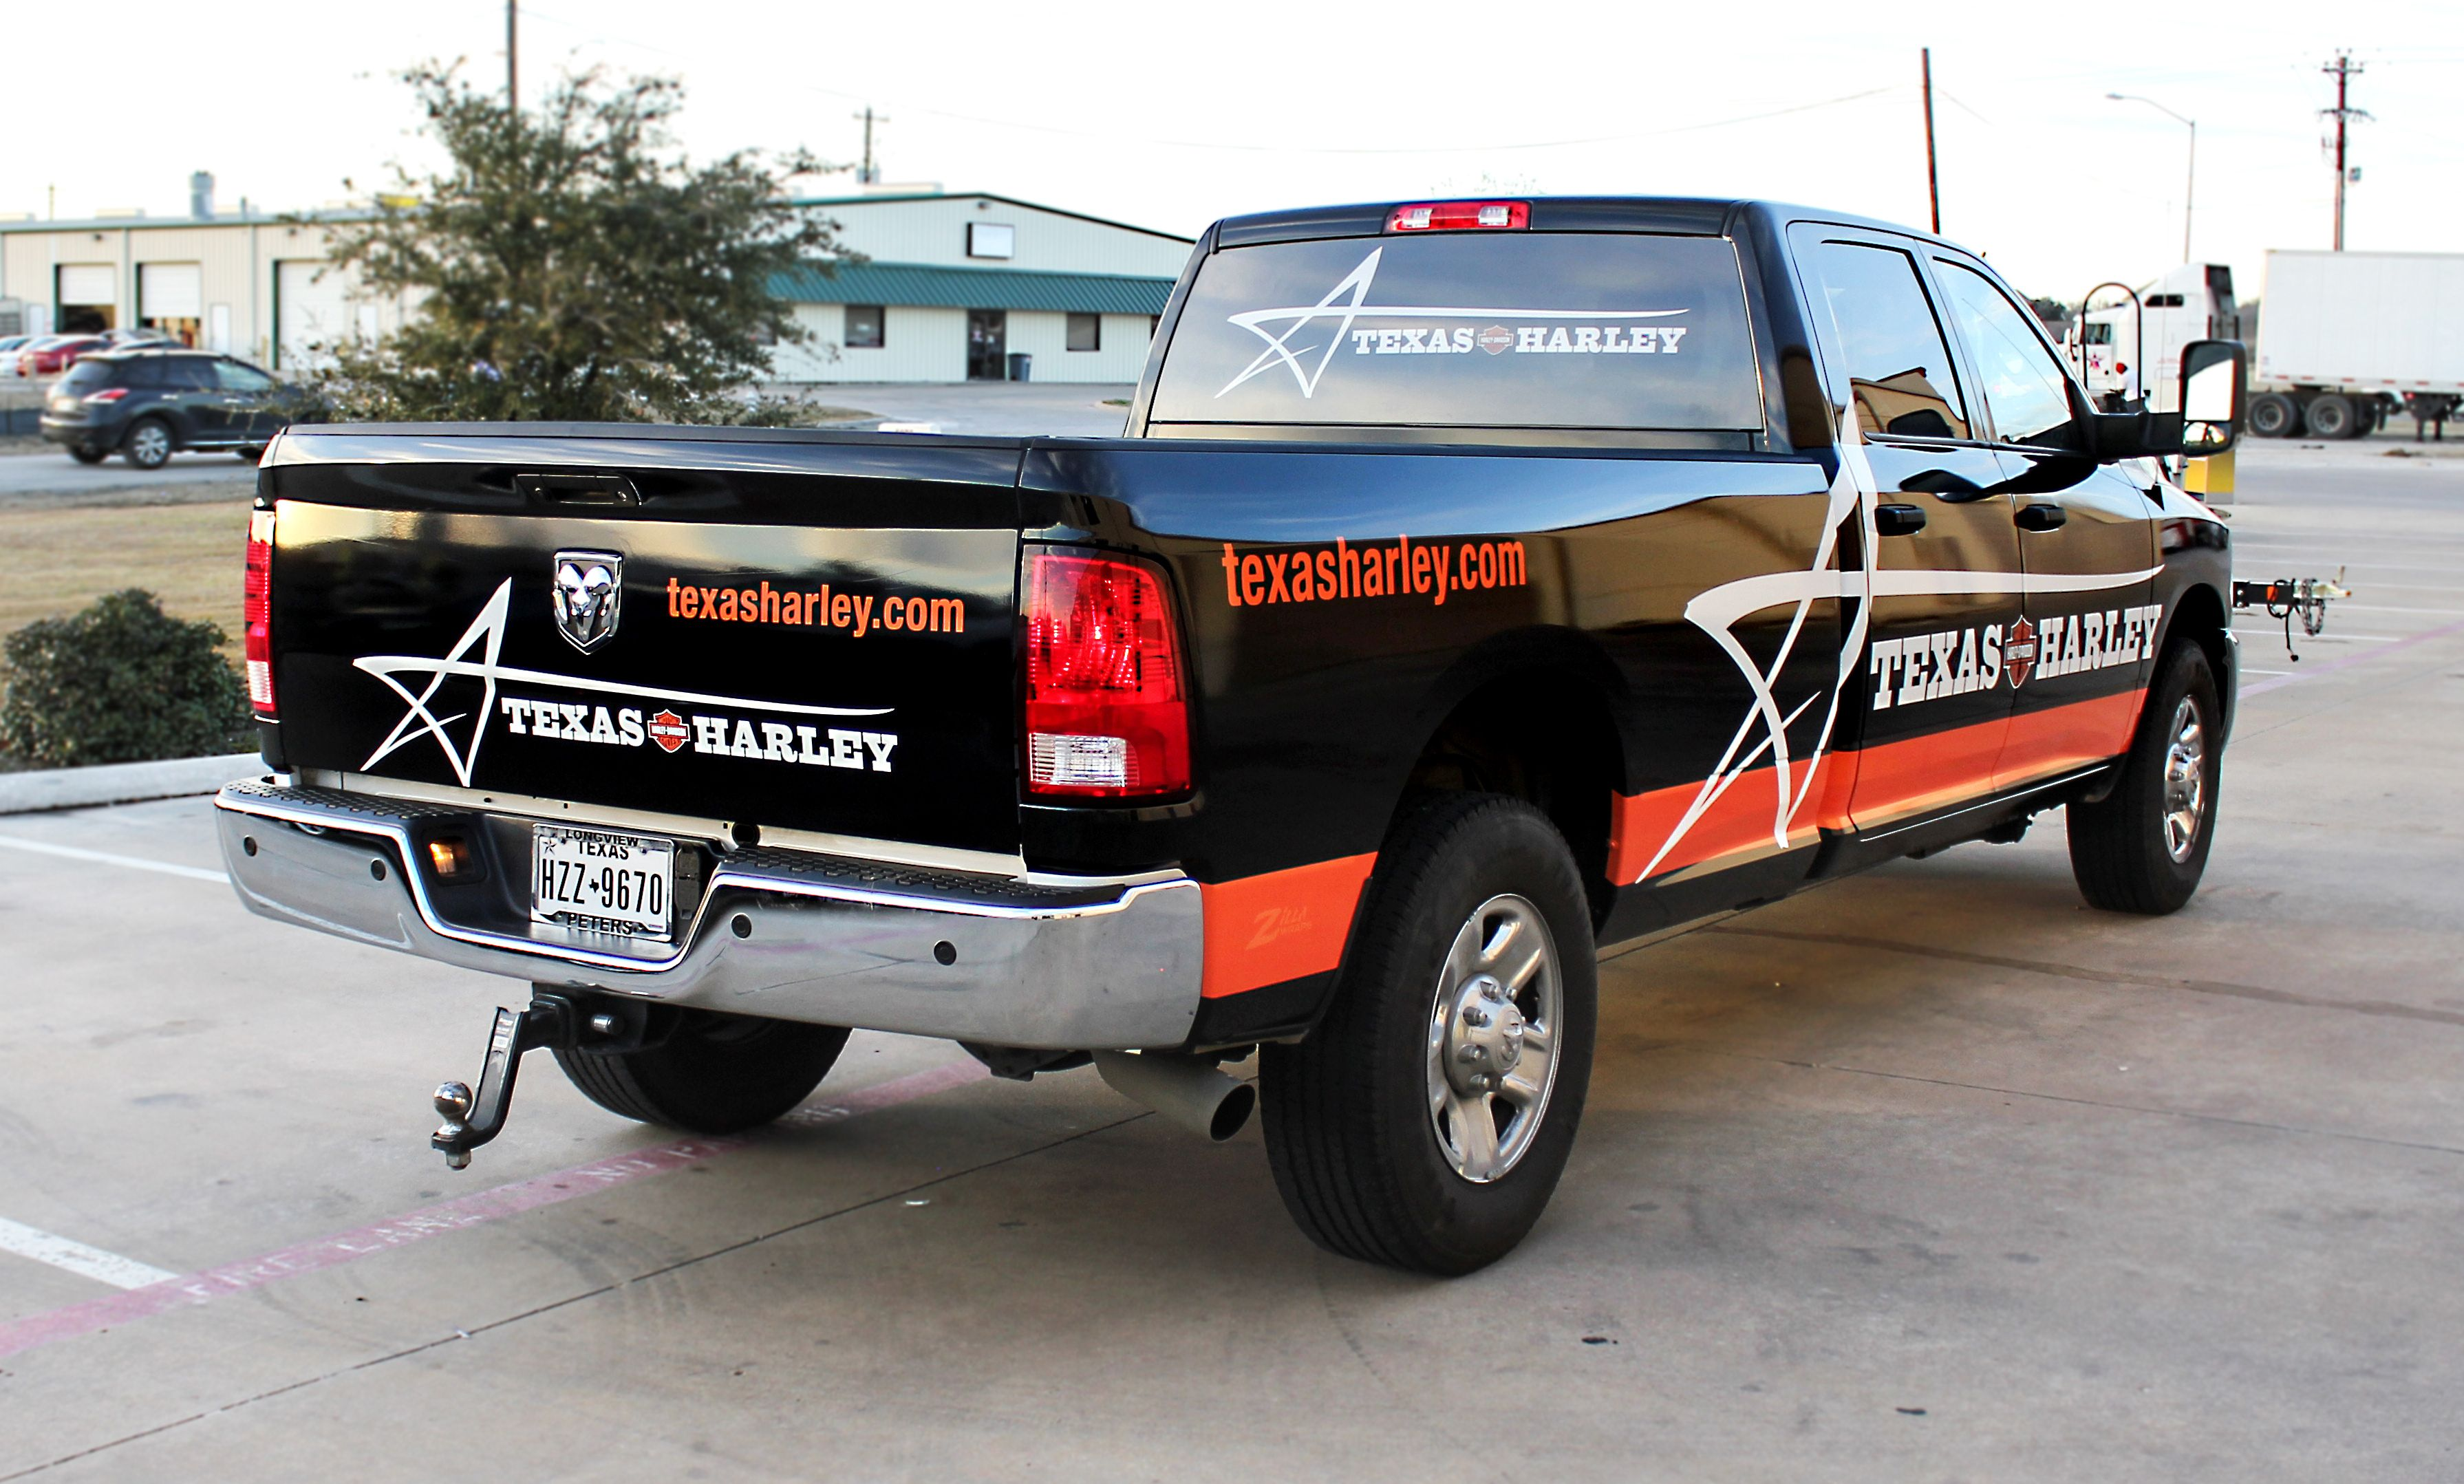 Full Truck Wrap for Adam Smith s Texas Harley in Bedford